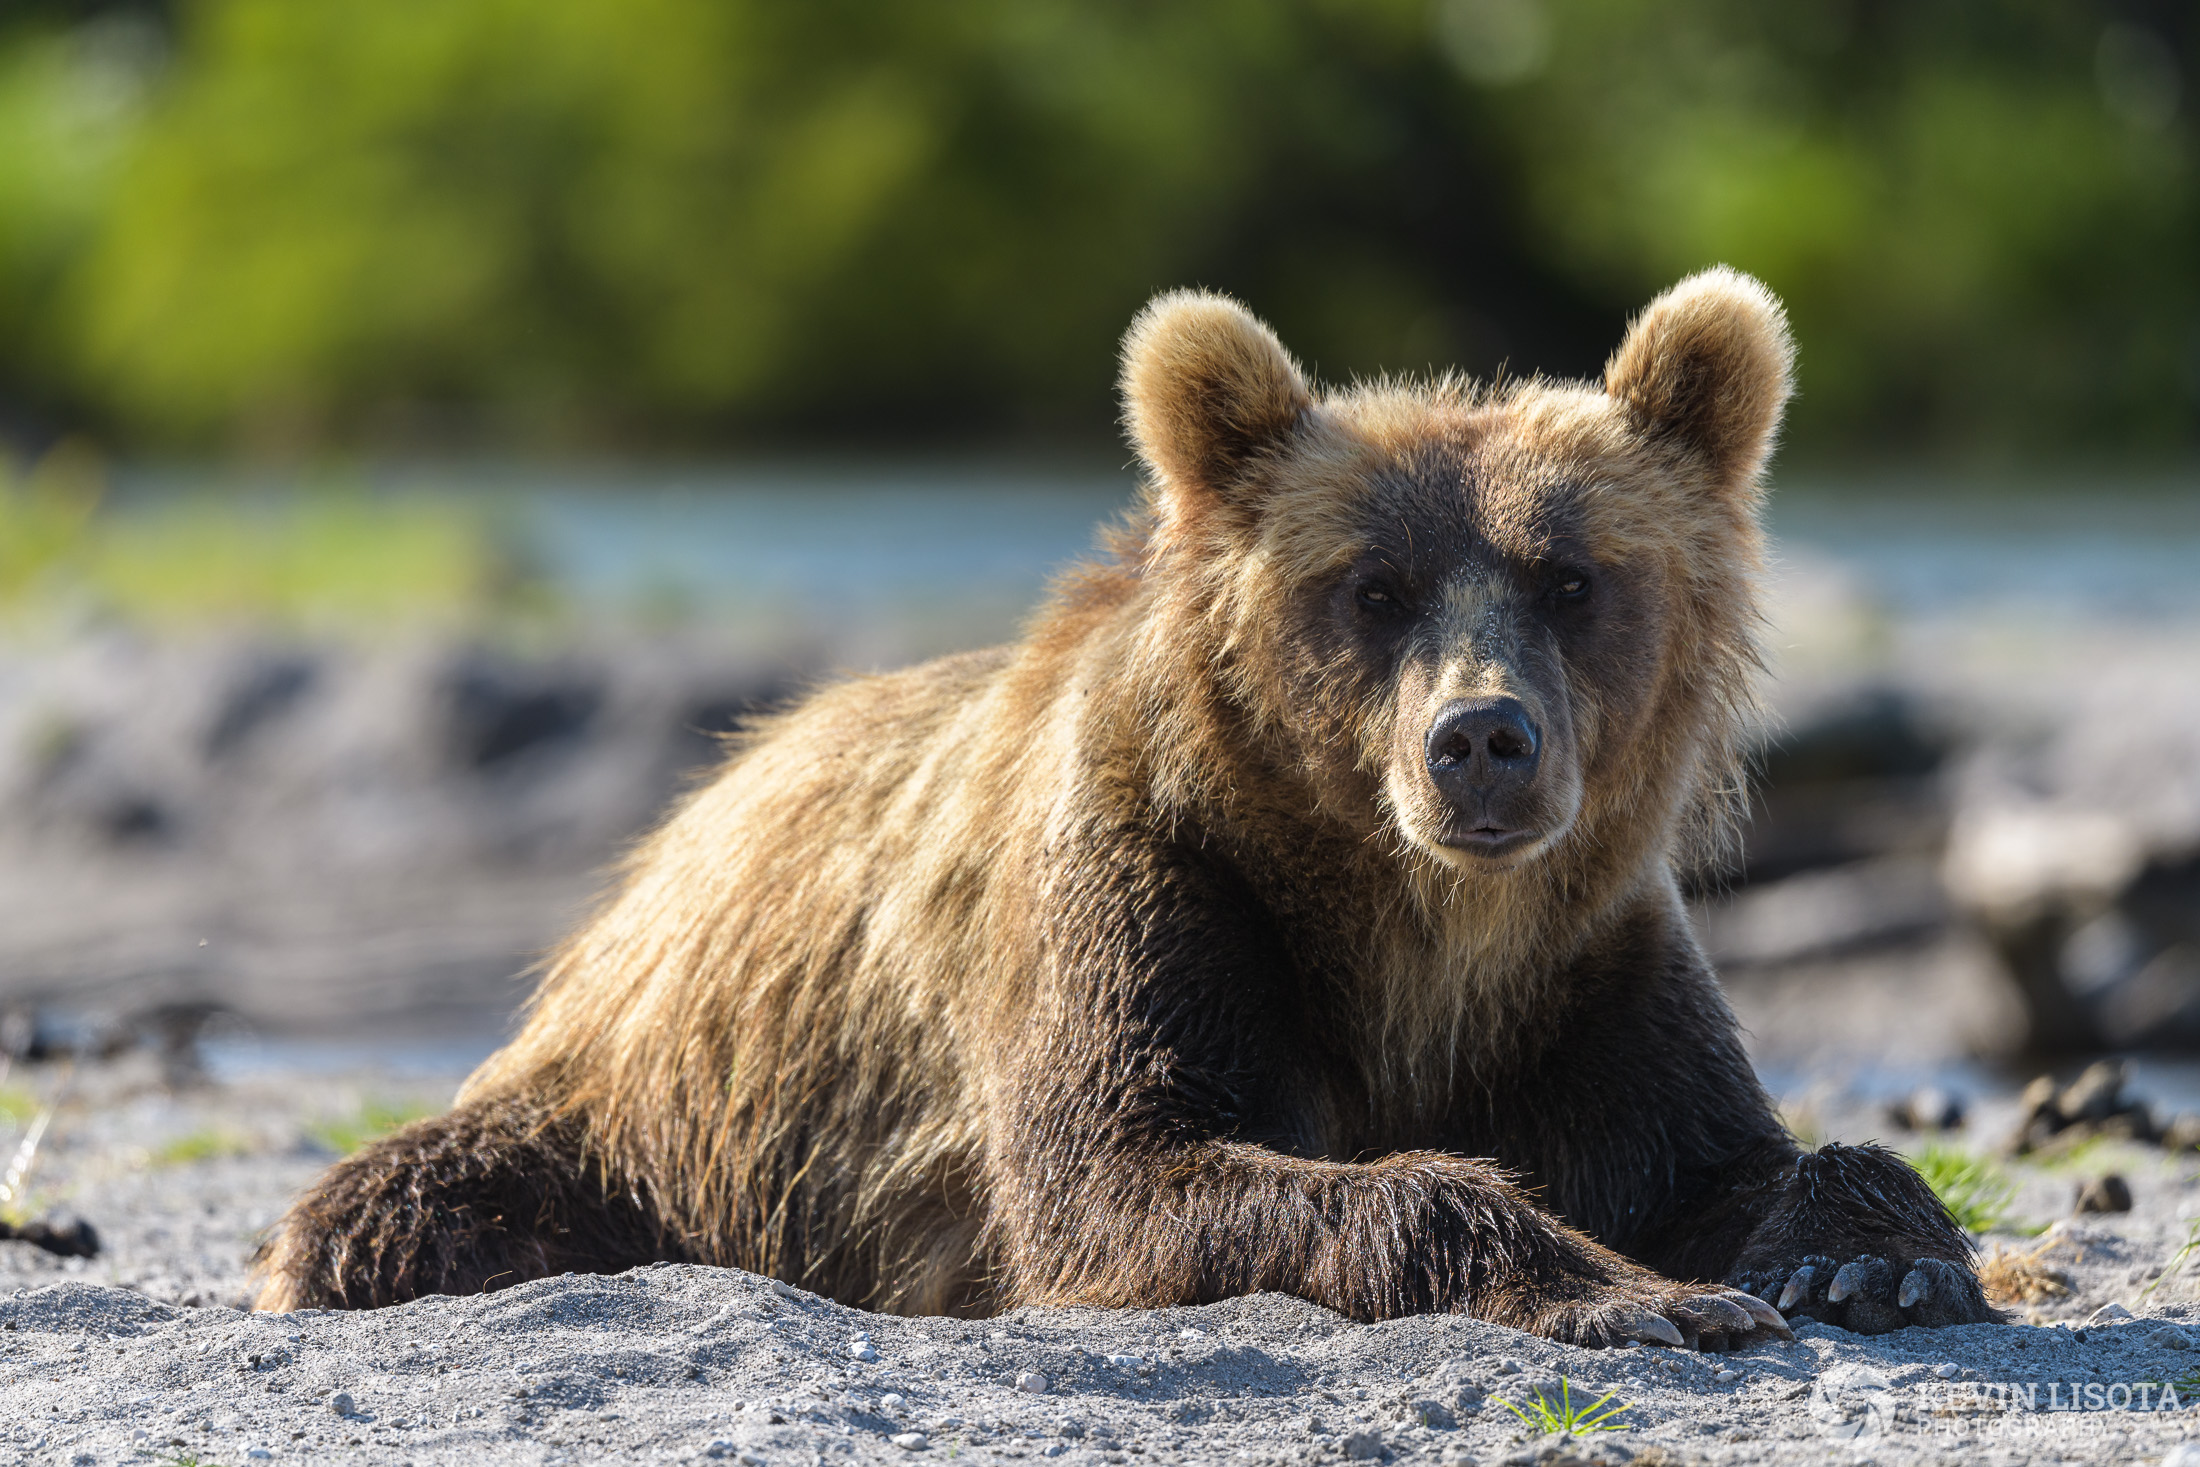 Brown bear resting at Kurile Lake in Kamchatka, Russia.